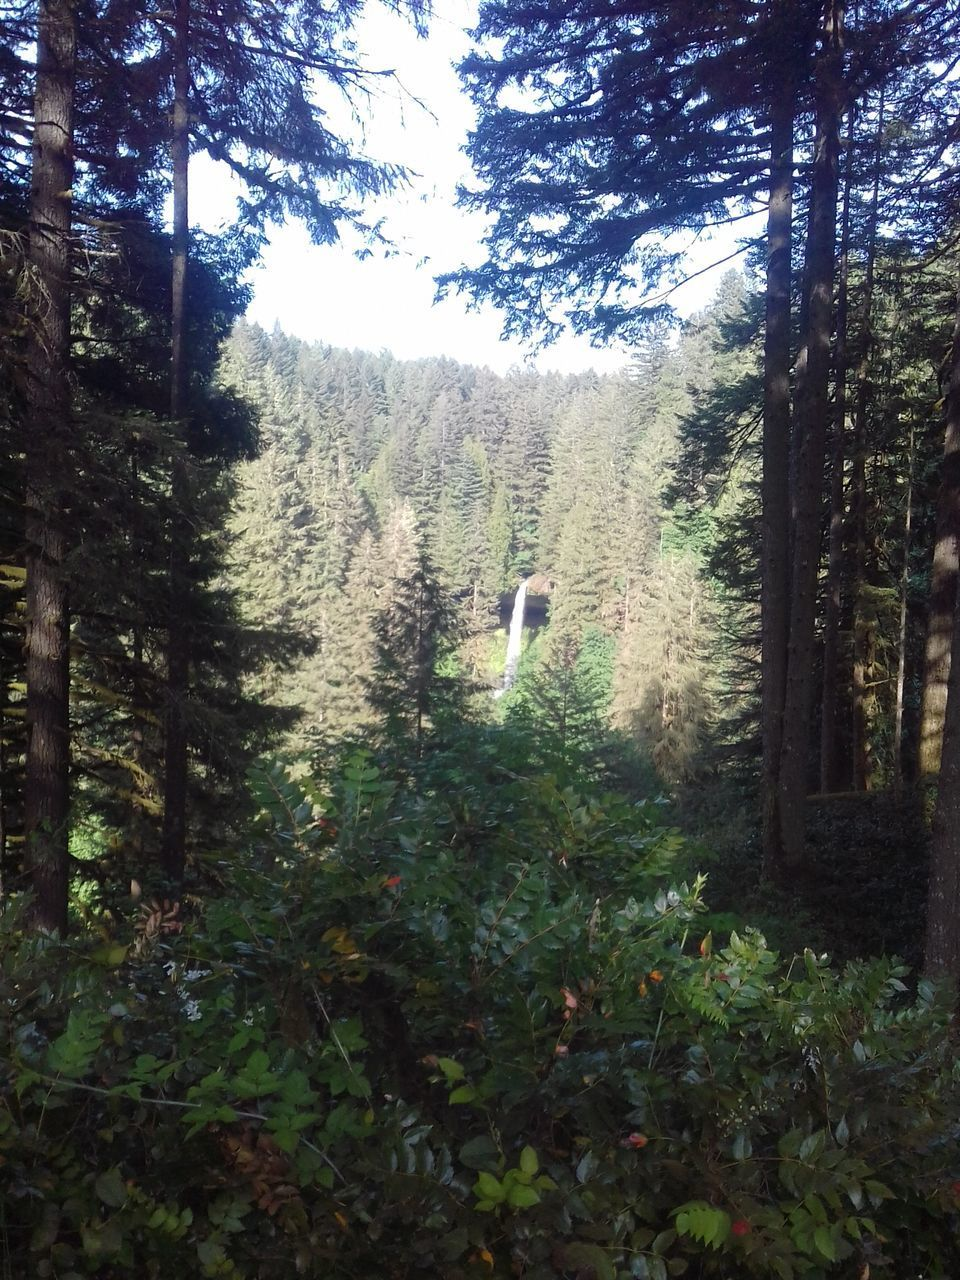 tree, growth, forest, nature, one person, plant, day, real people, beauty in nature, outdoors, sky, people